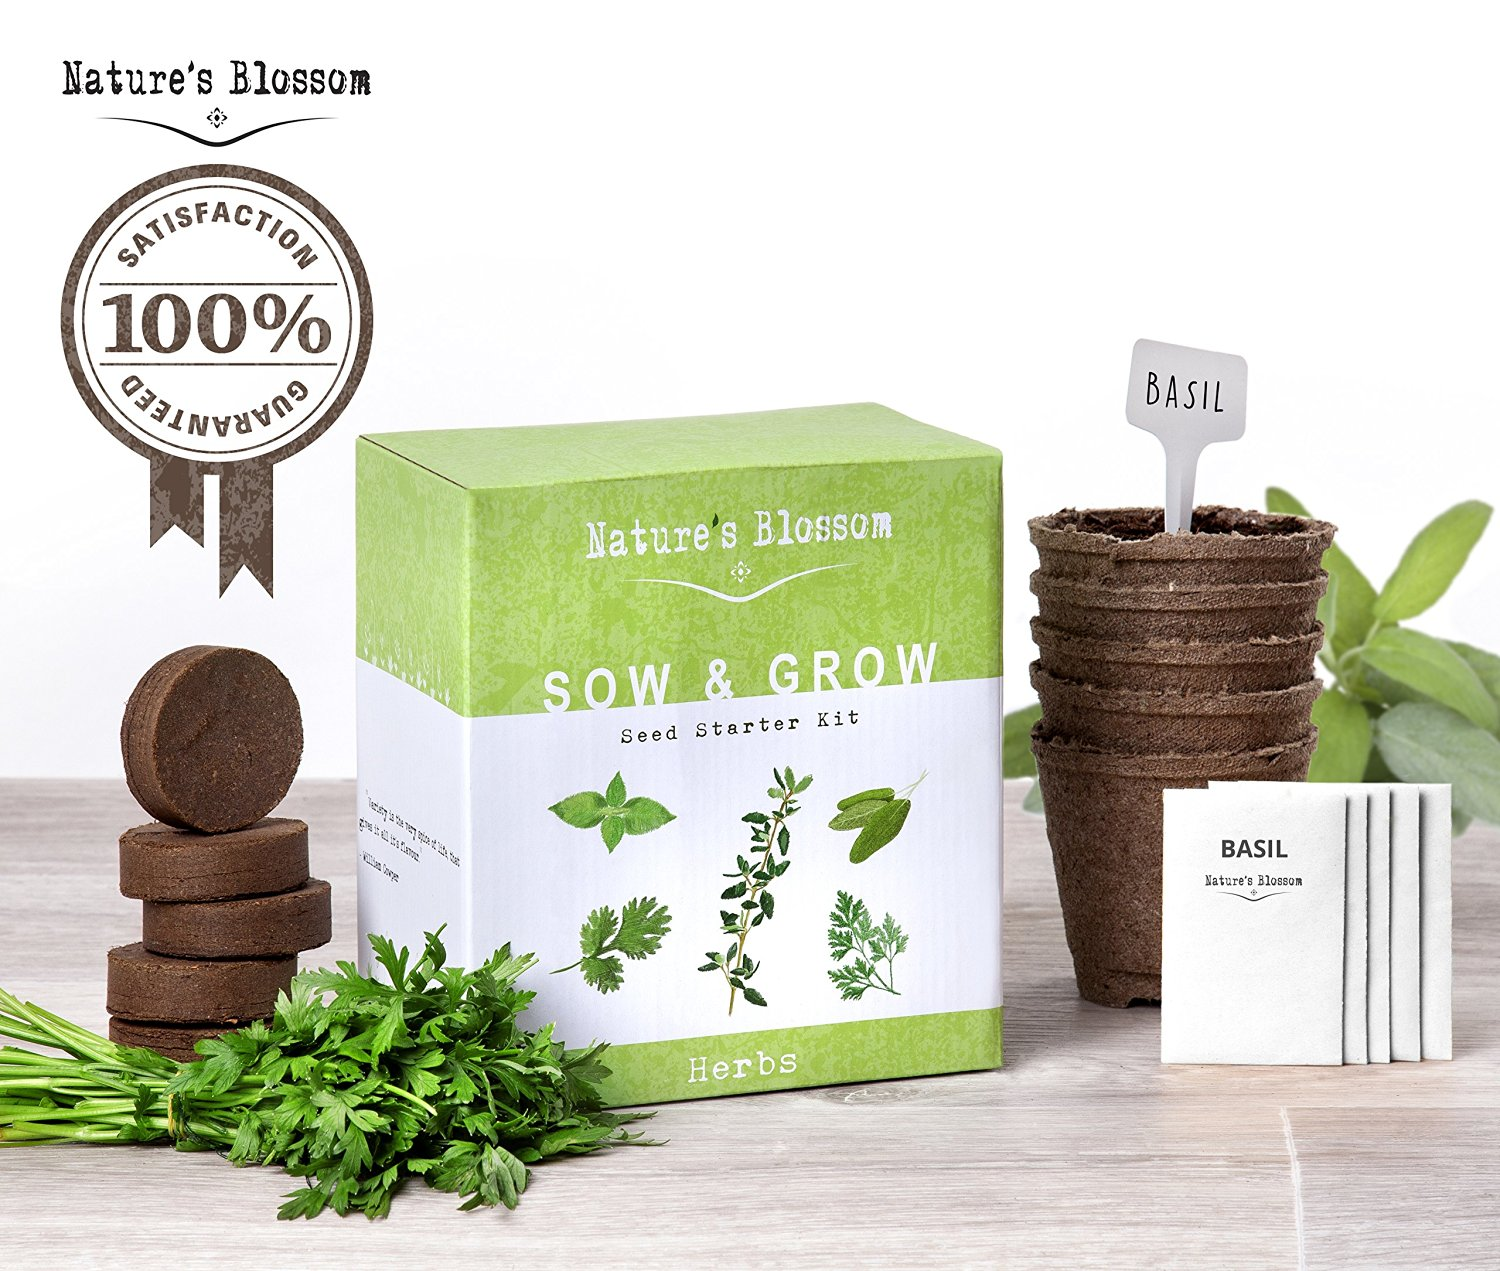 natures-blossom-sow-and-grow-seed-starter-kit-picture